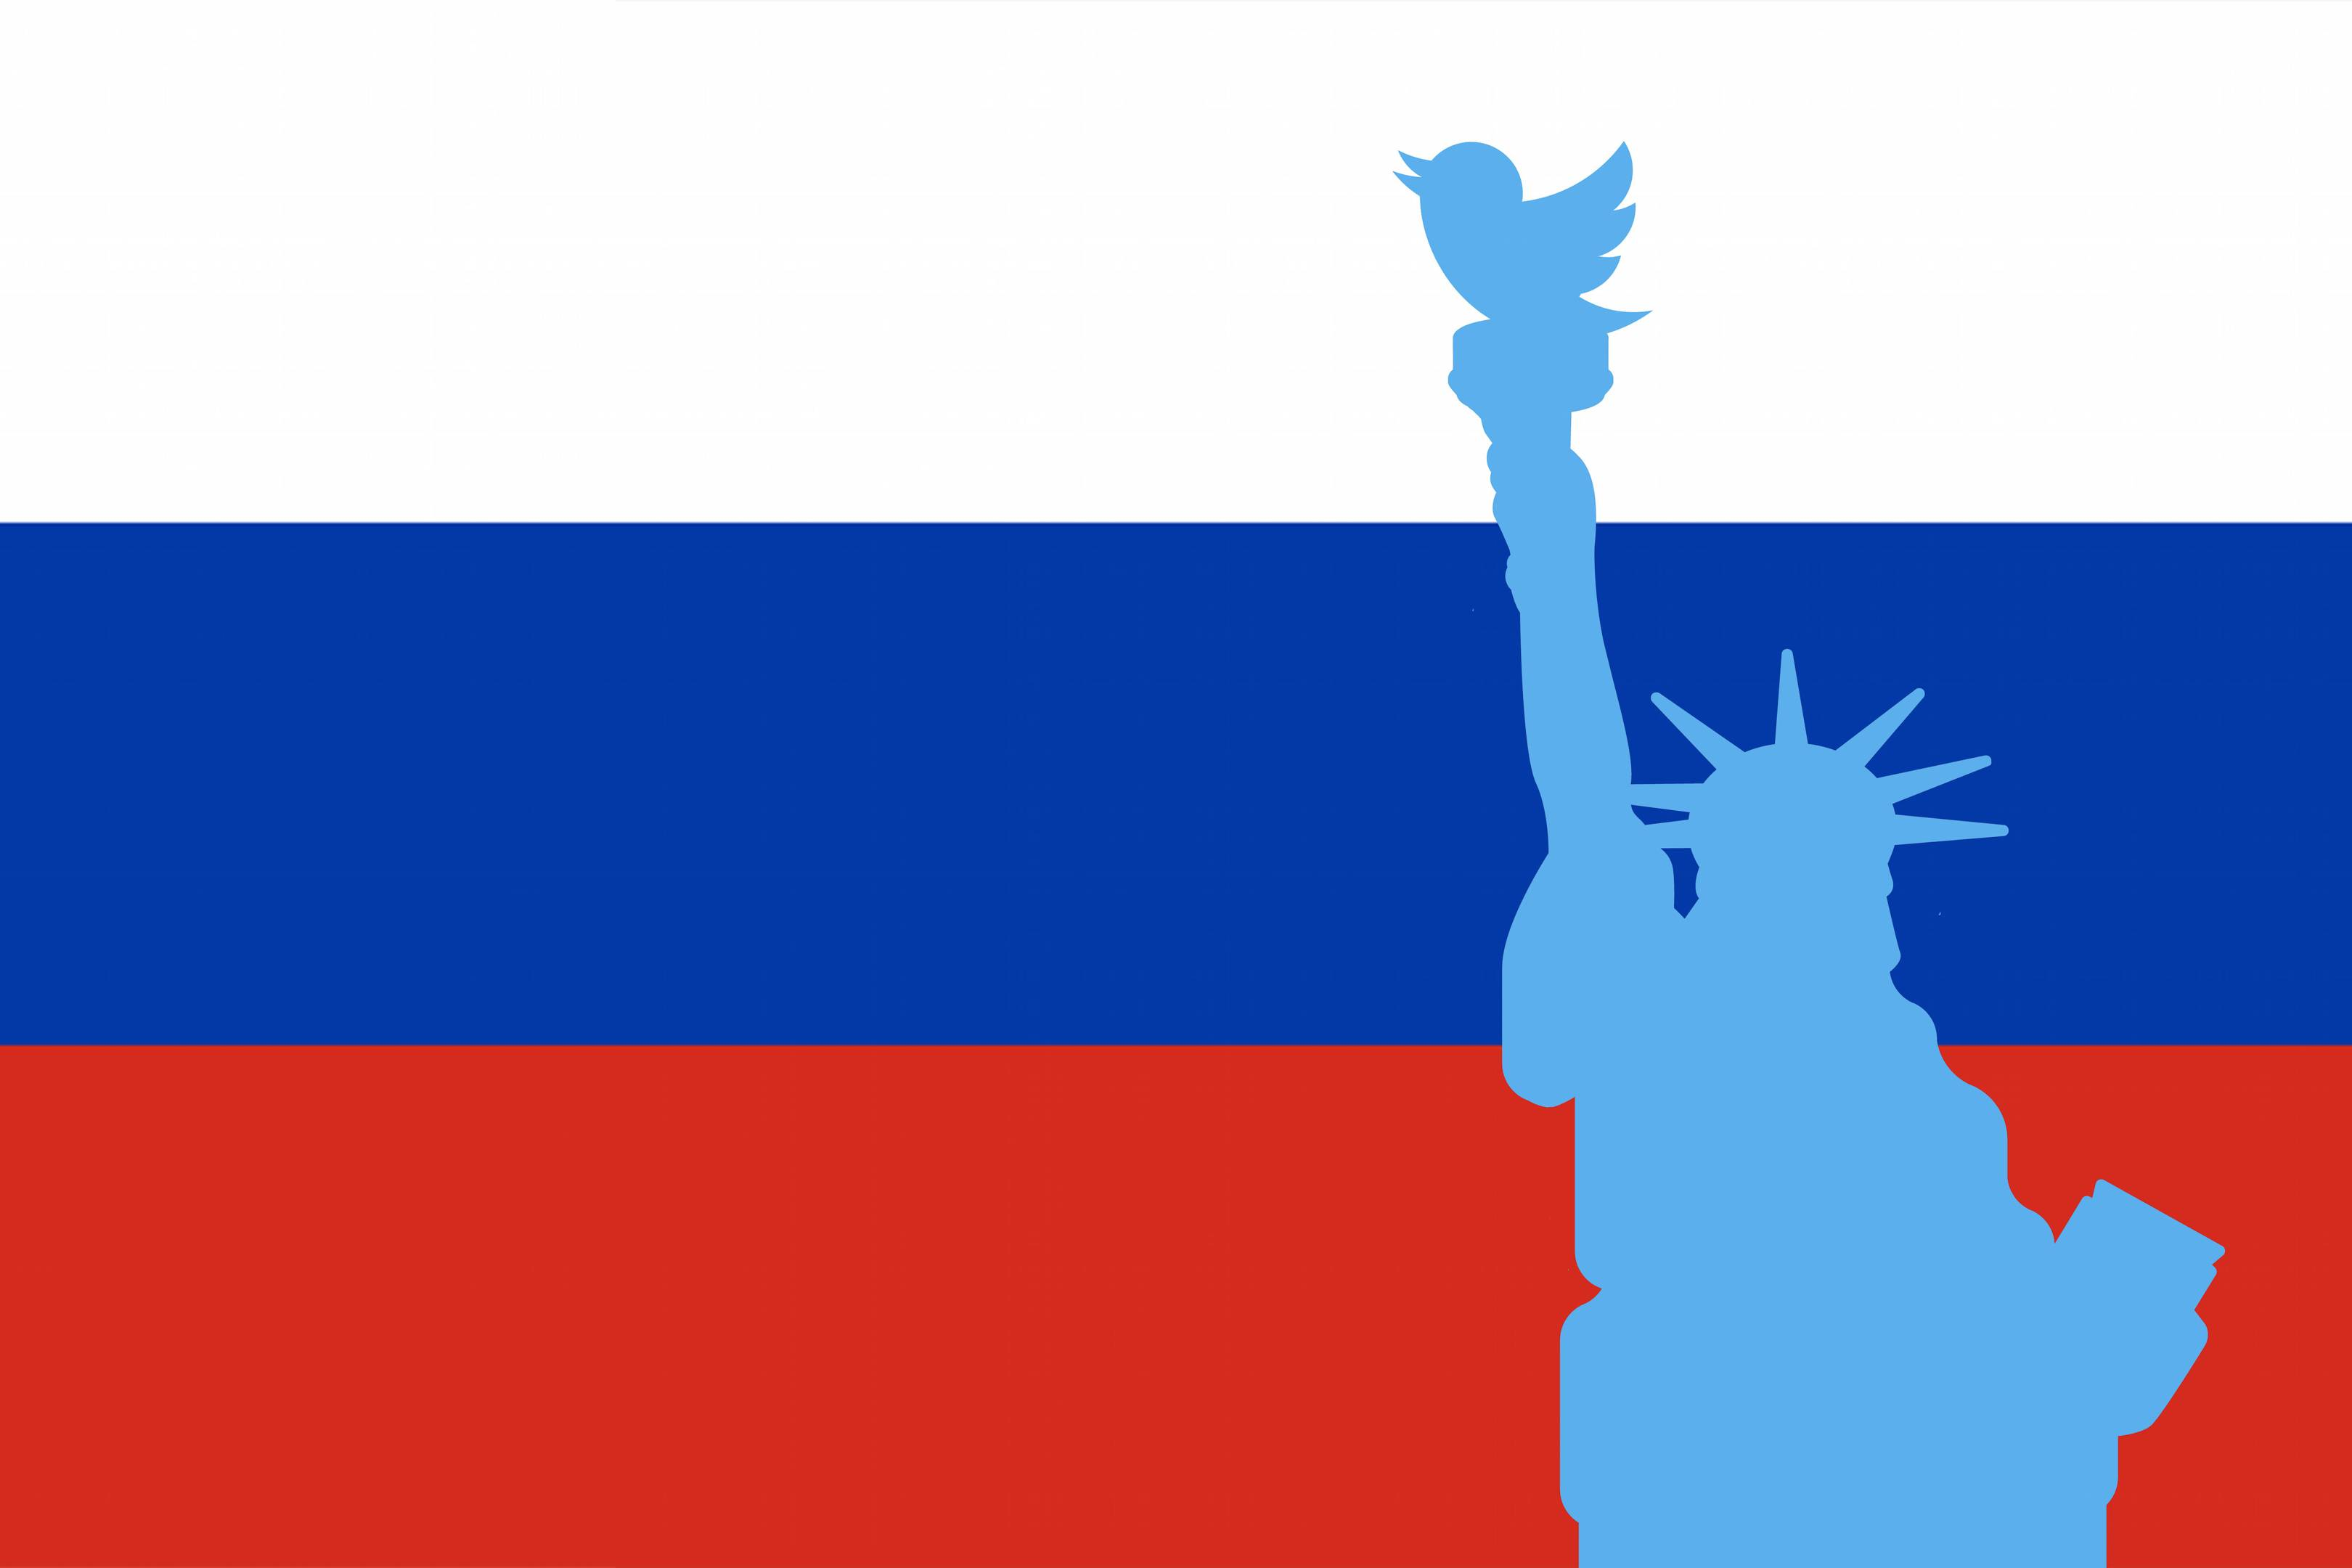 We finally know the full extent of Russia's Twitter trolling campaign